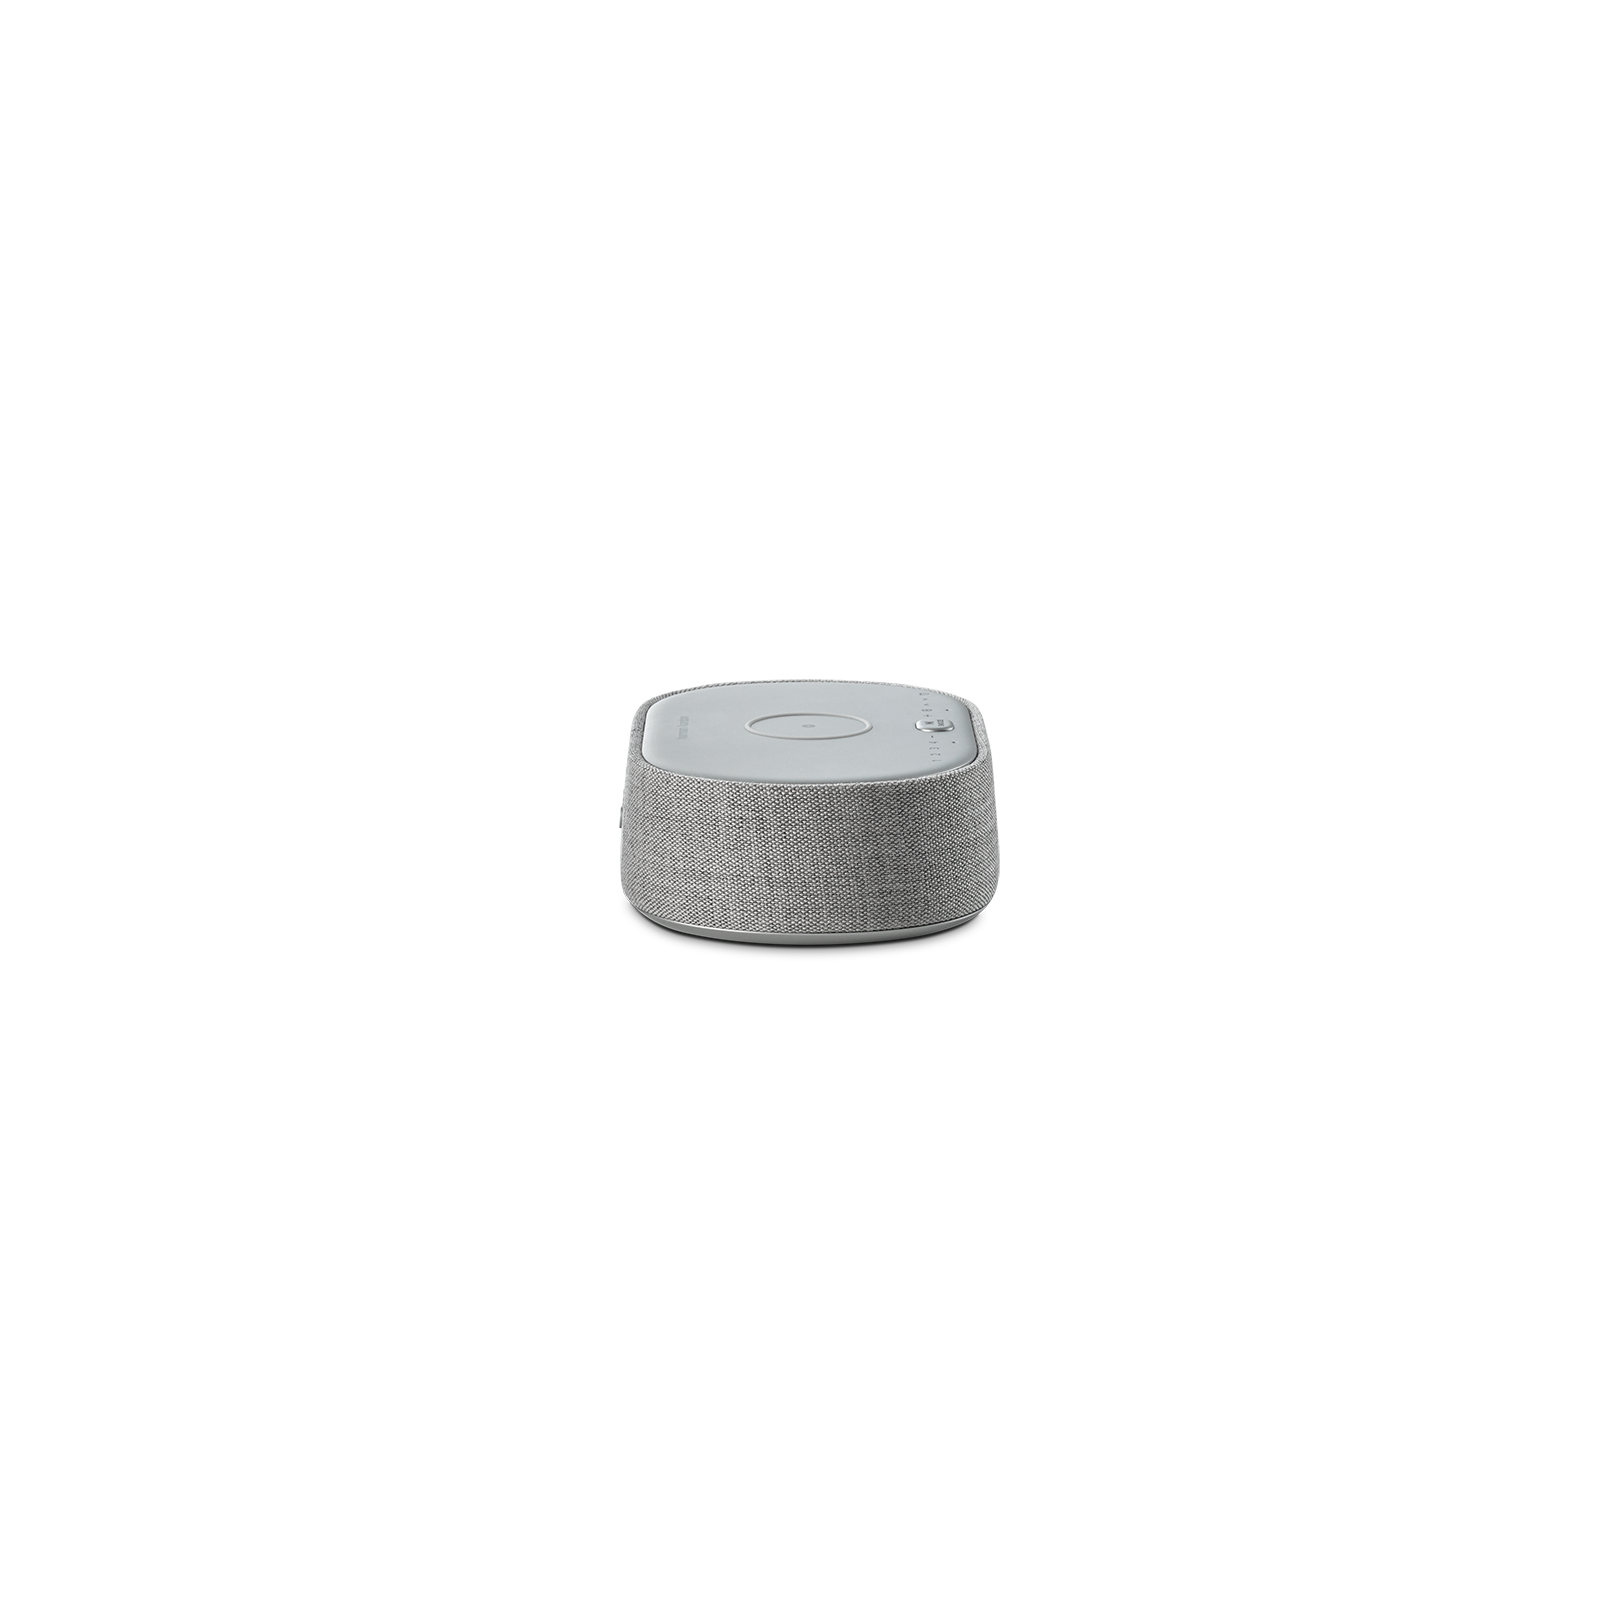 Harman Kardon Citation Oasis FM - Grey - Voice-controlled speaker with clock radio and wireless phone charging - Left